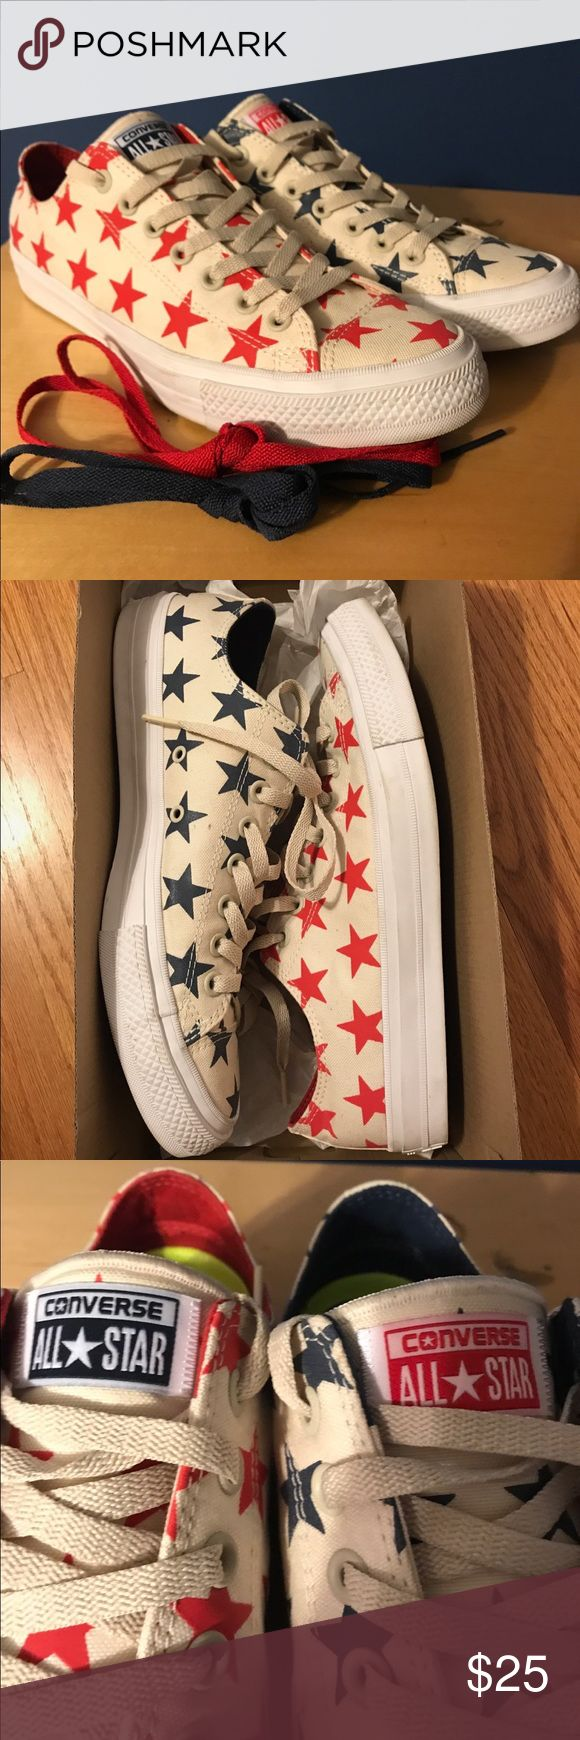 Converse Sneakers American Flag Star converse sneakers, uni sex, barely worn, comes with original box and a pair of white laces and red and blue laces (size under girls size but has both sizes in one picture) Converse Shoes Sneakers